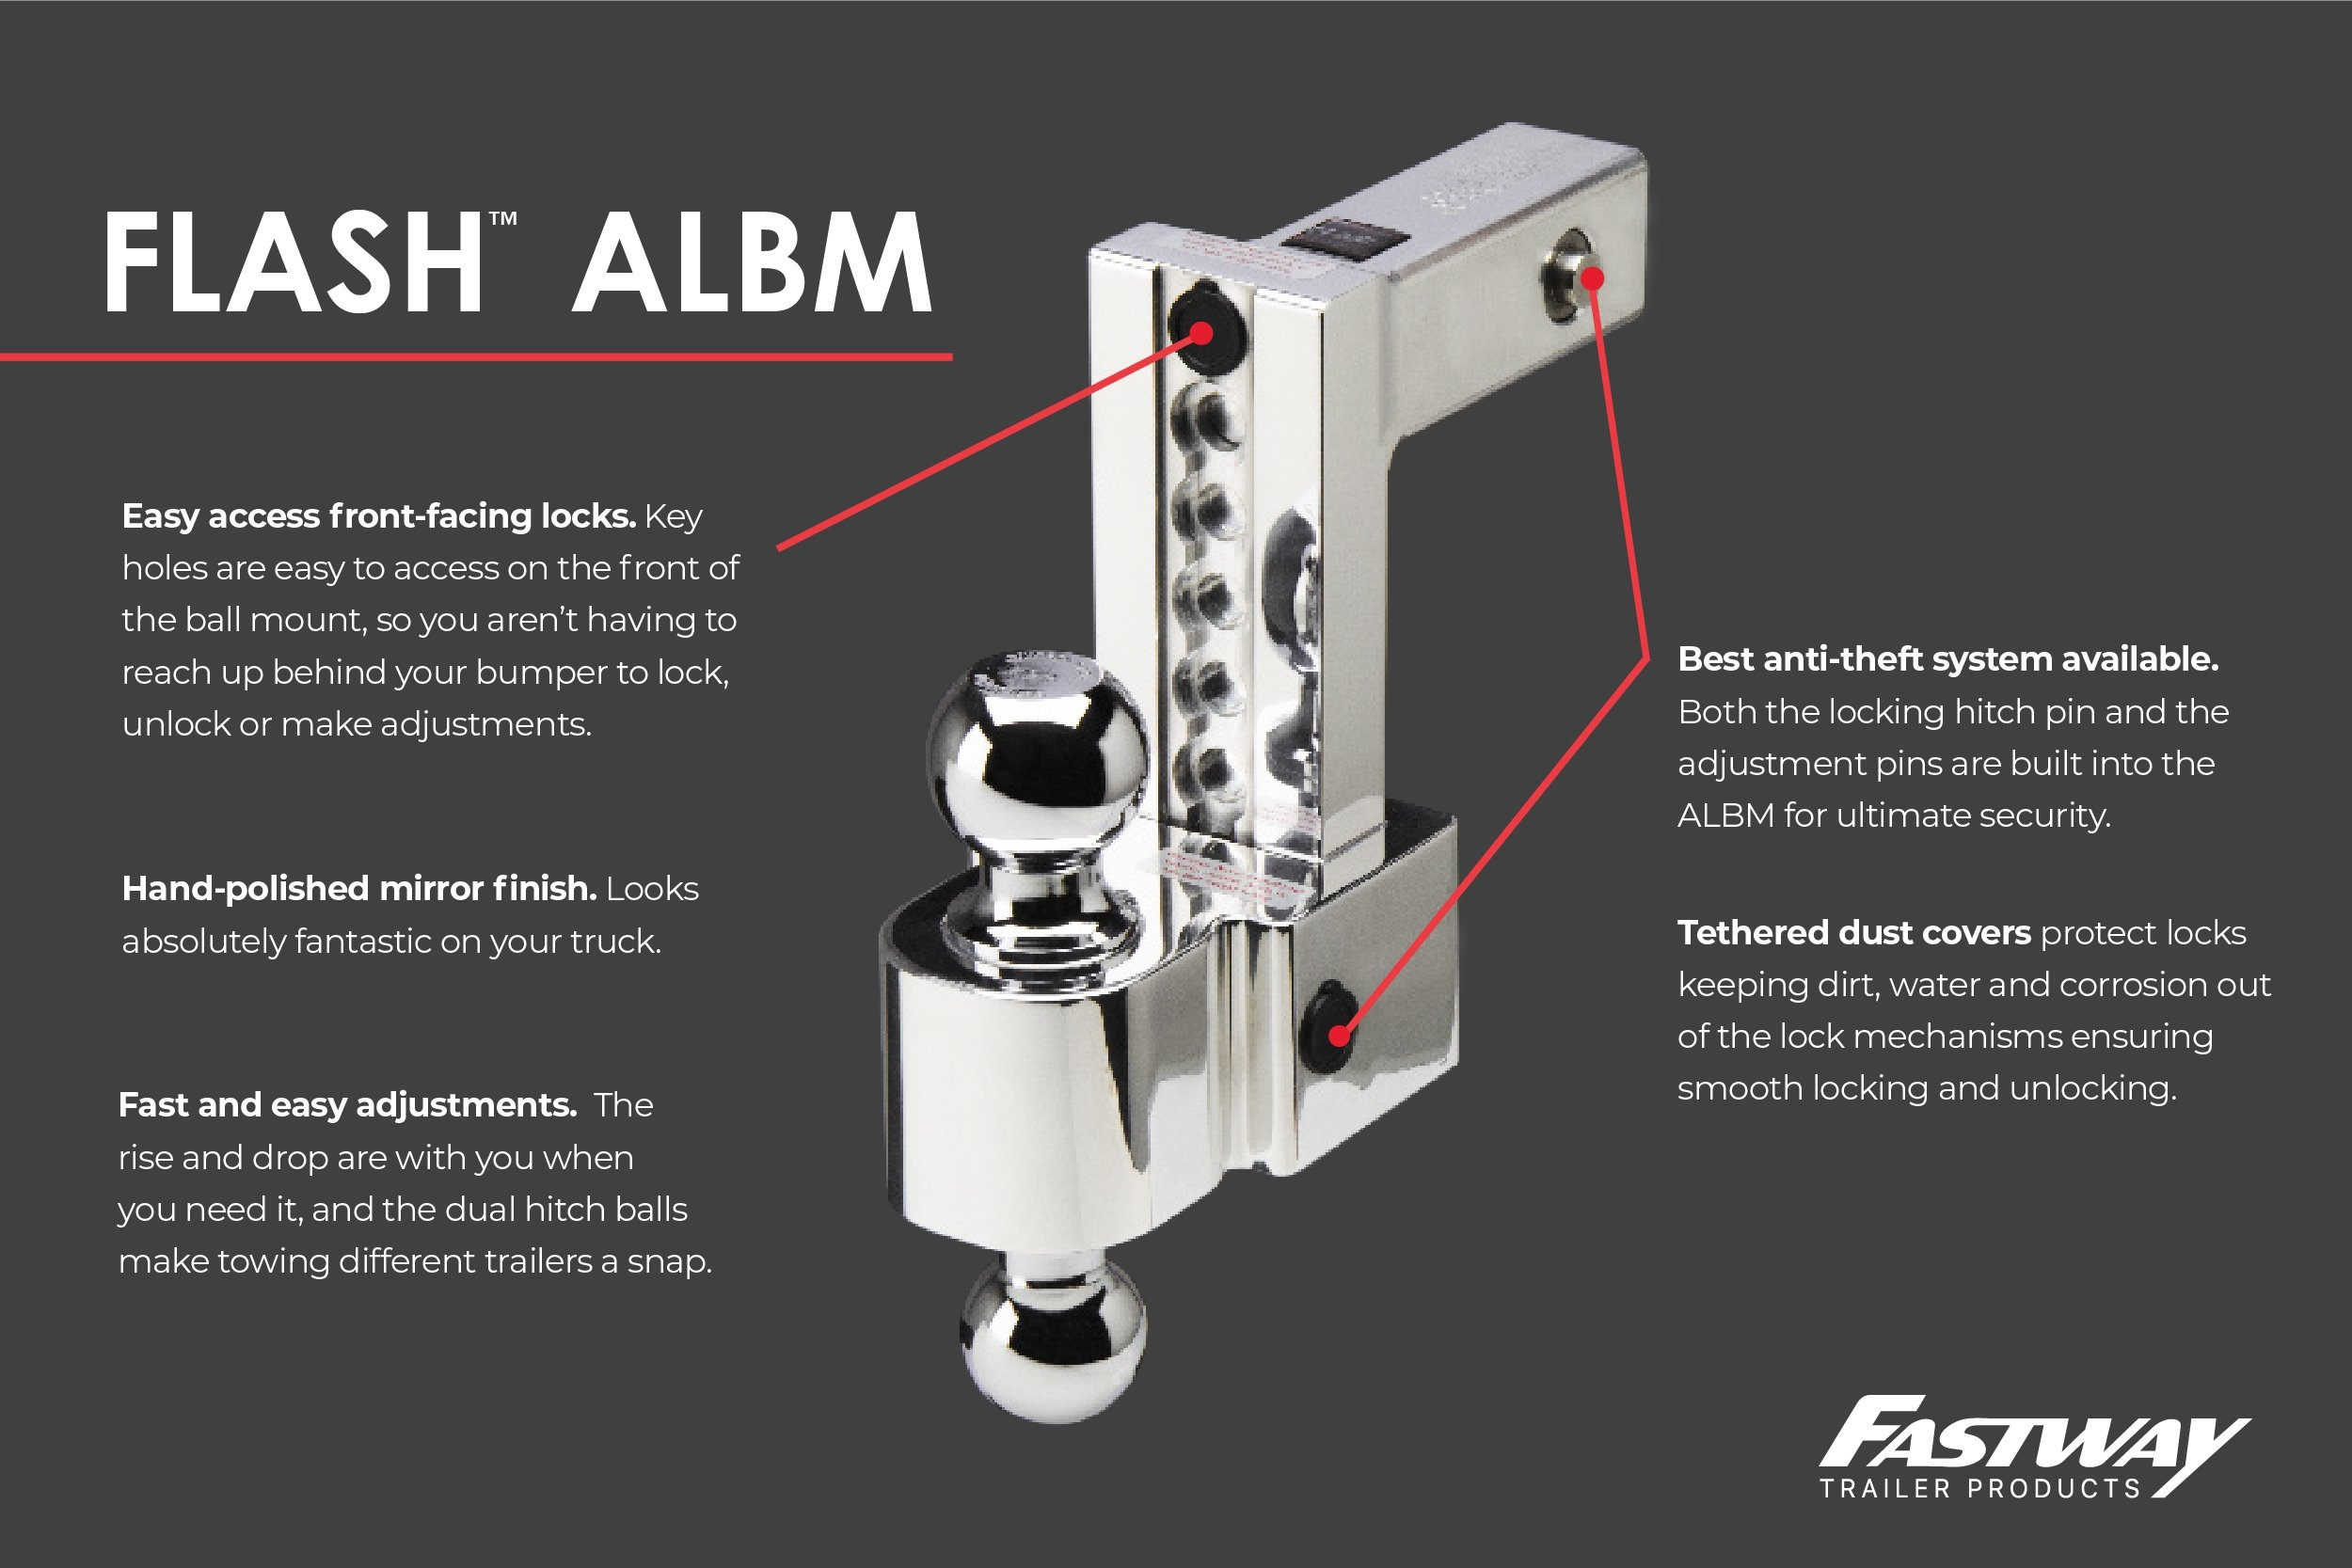 flash-albm.jpg#asset:870